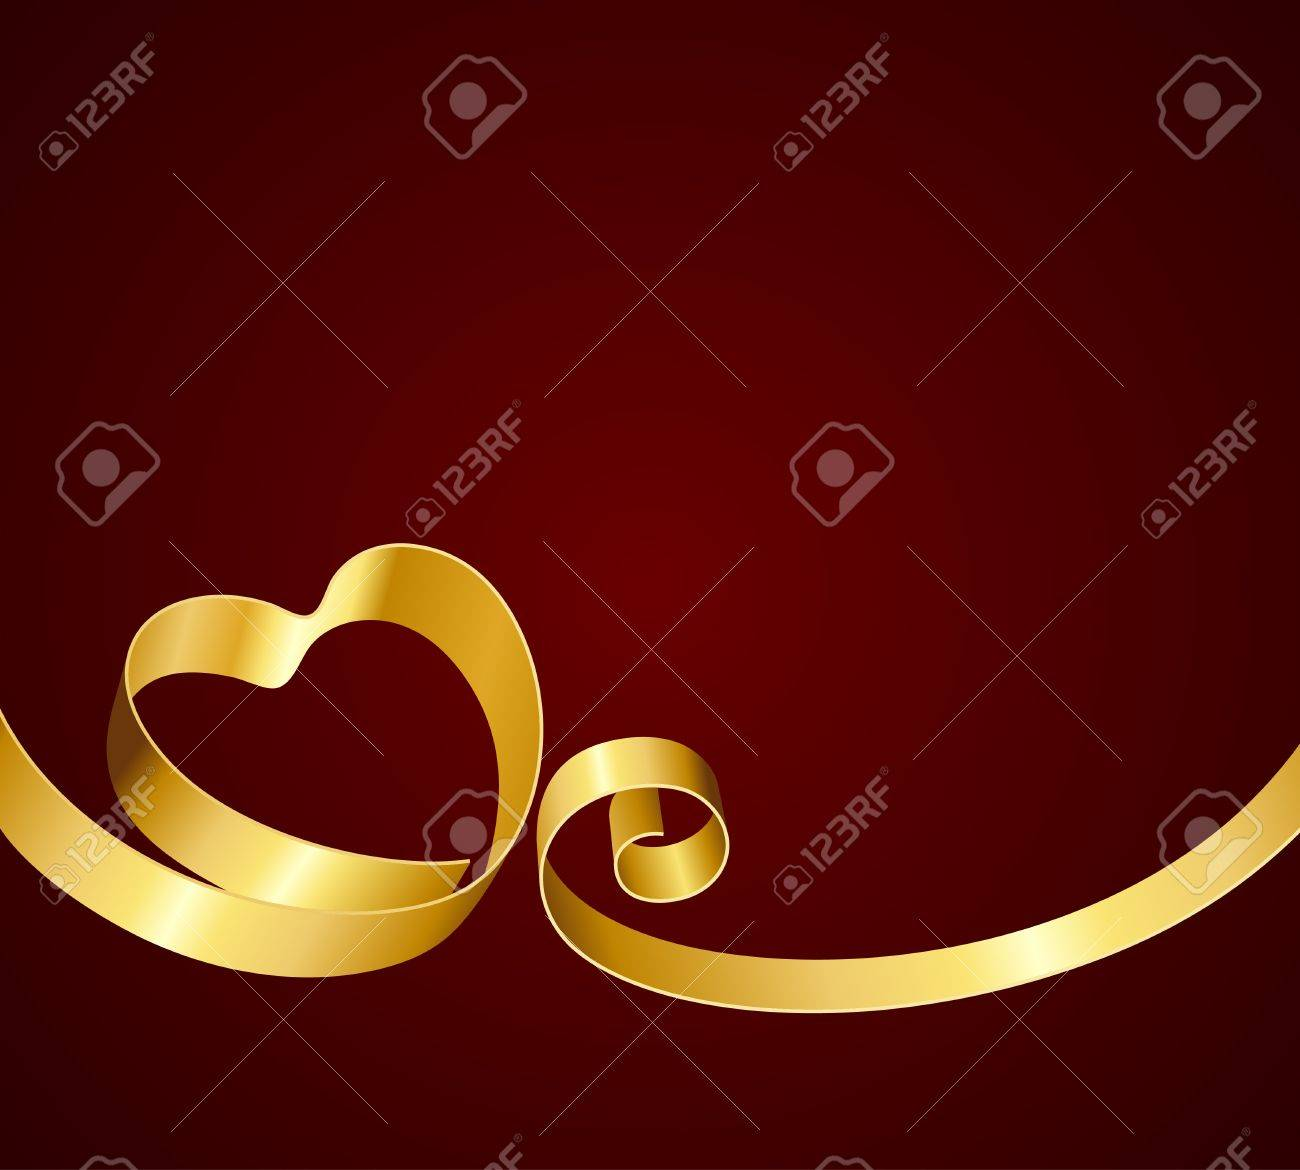 Heart from ribbon Valentine day vector background Stock Vector - 11917932